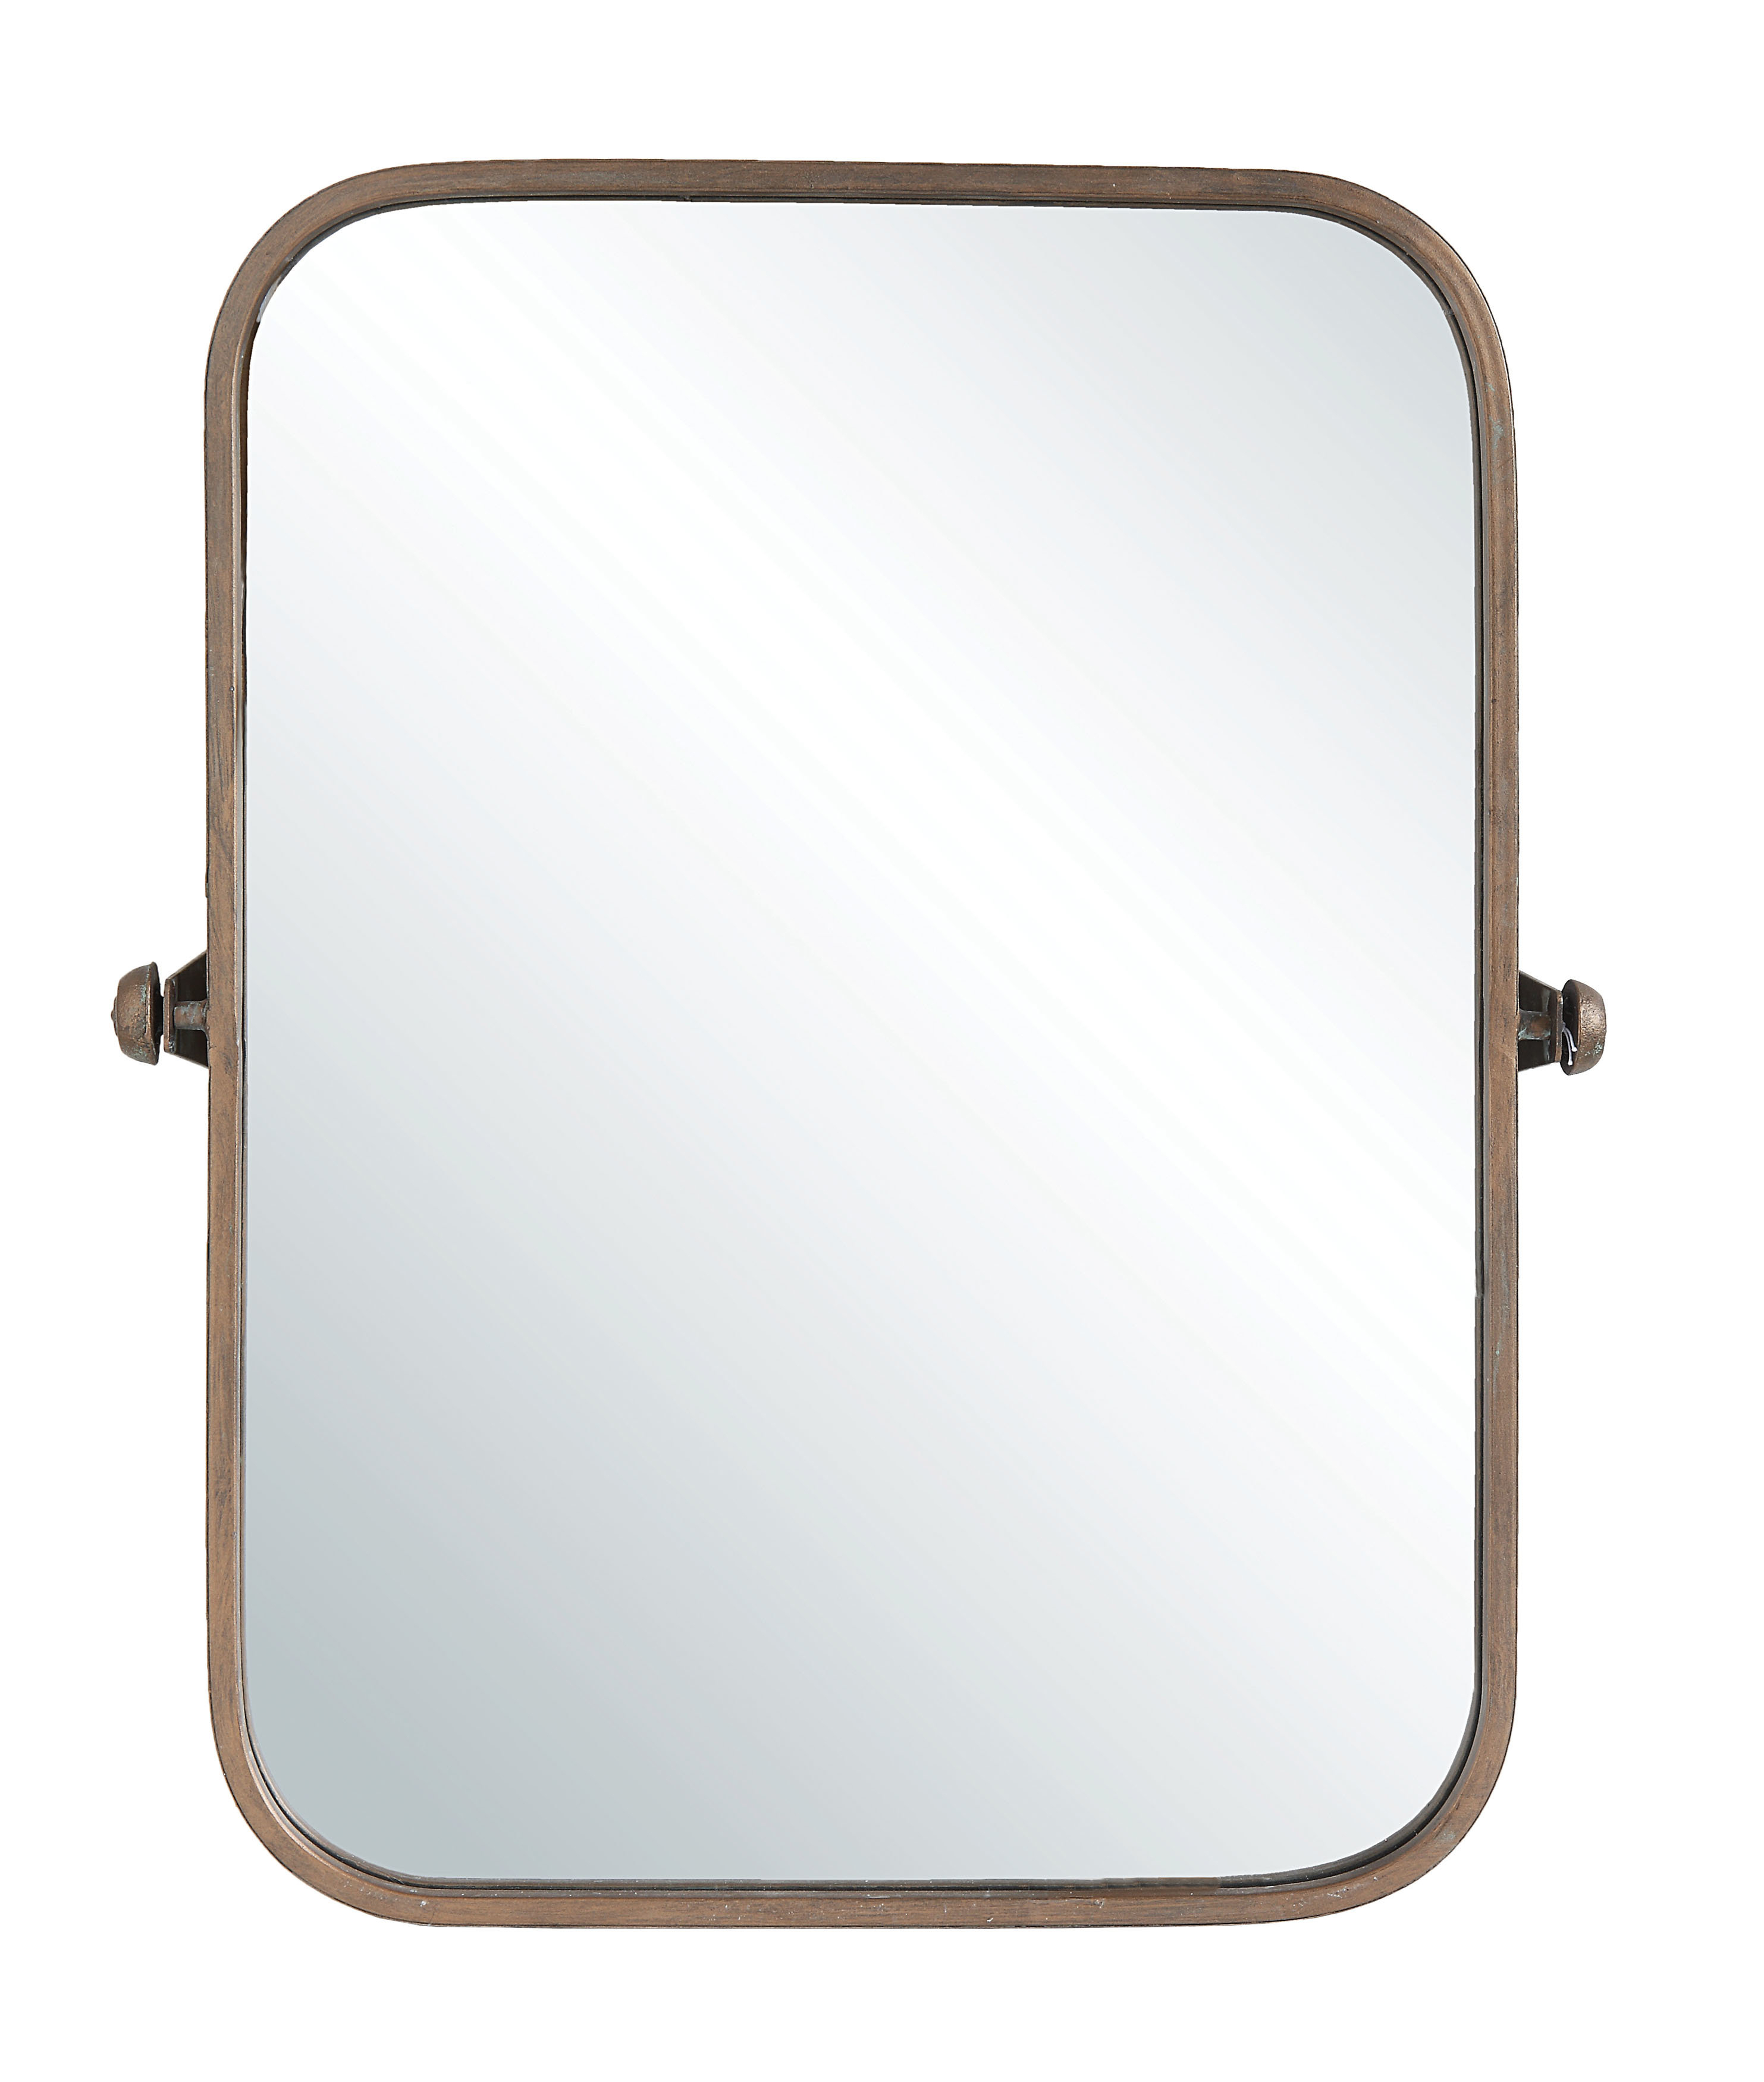 Metal Wall Mirrors | Joss & Main Intended For Phineas Wall Mirrors (Image 10 of 20)